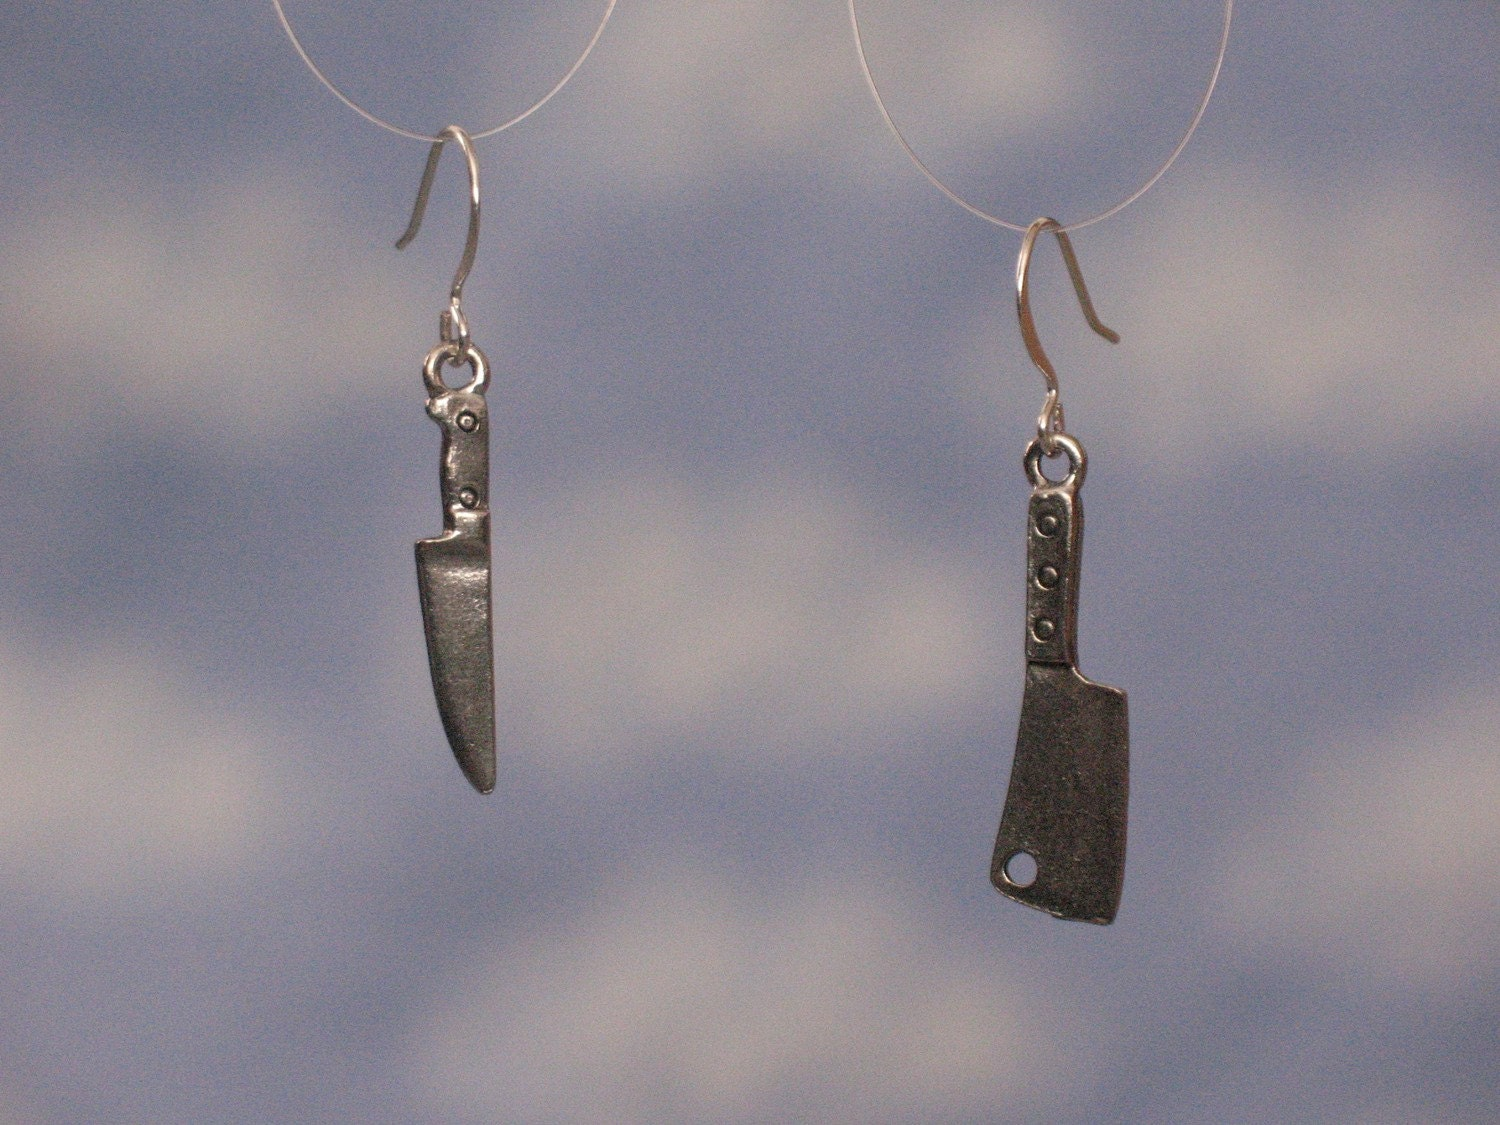 chef's knife and butcher's knife earrings